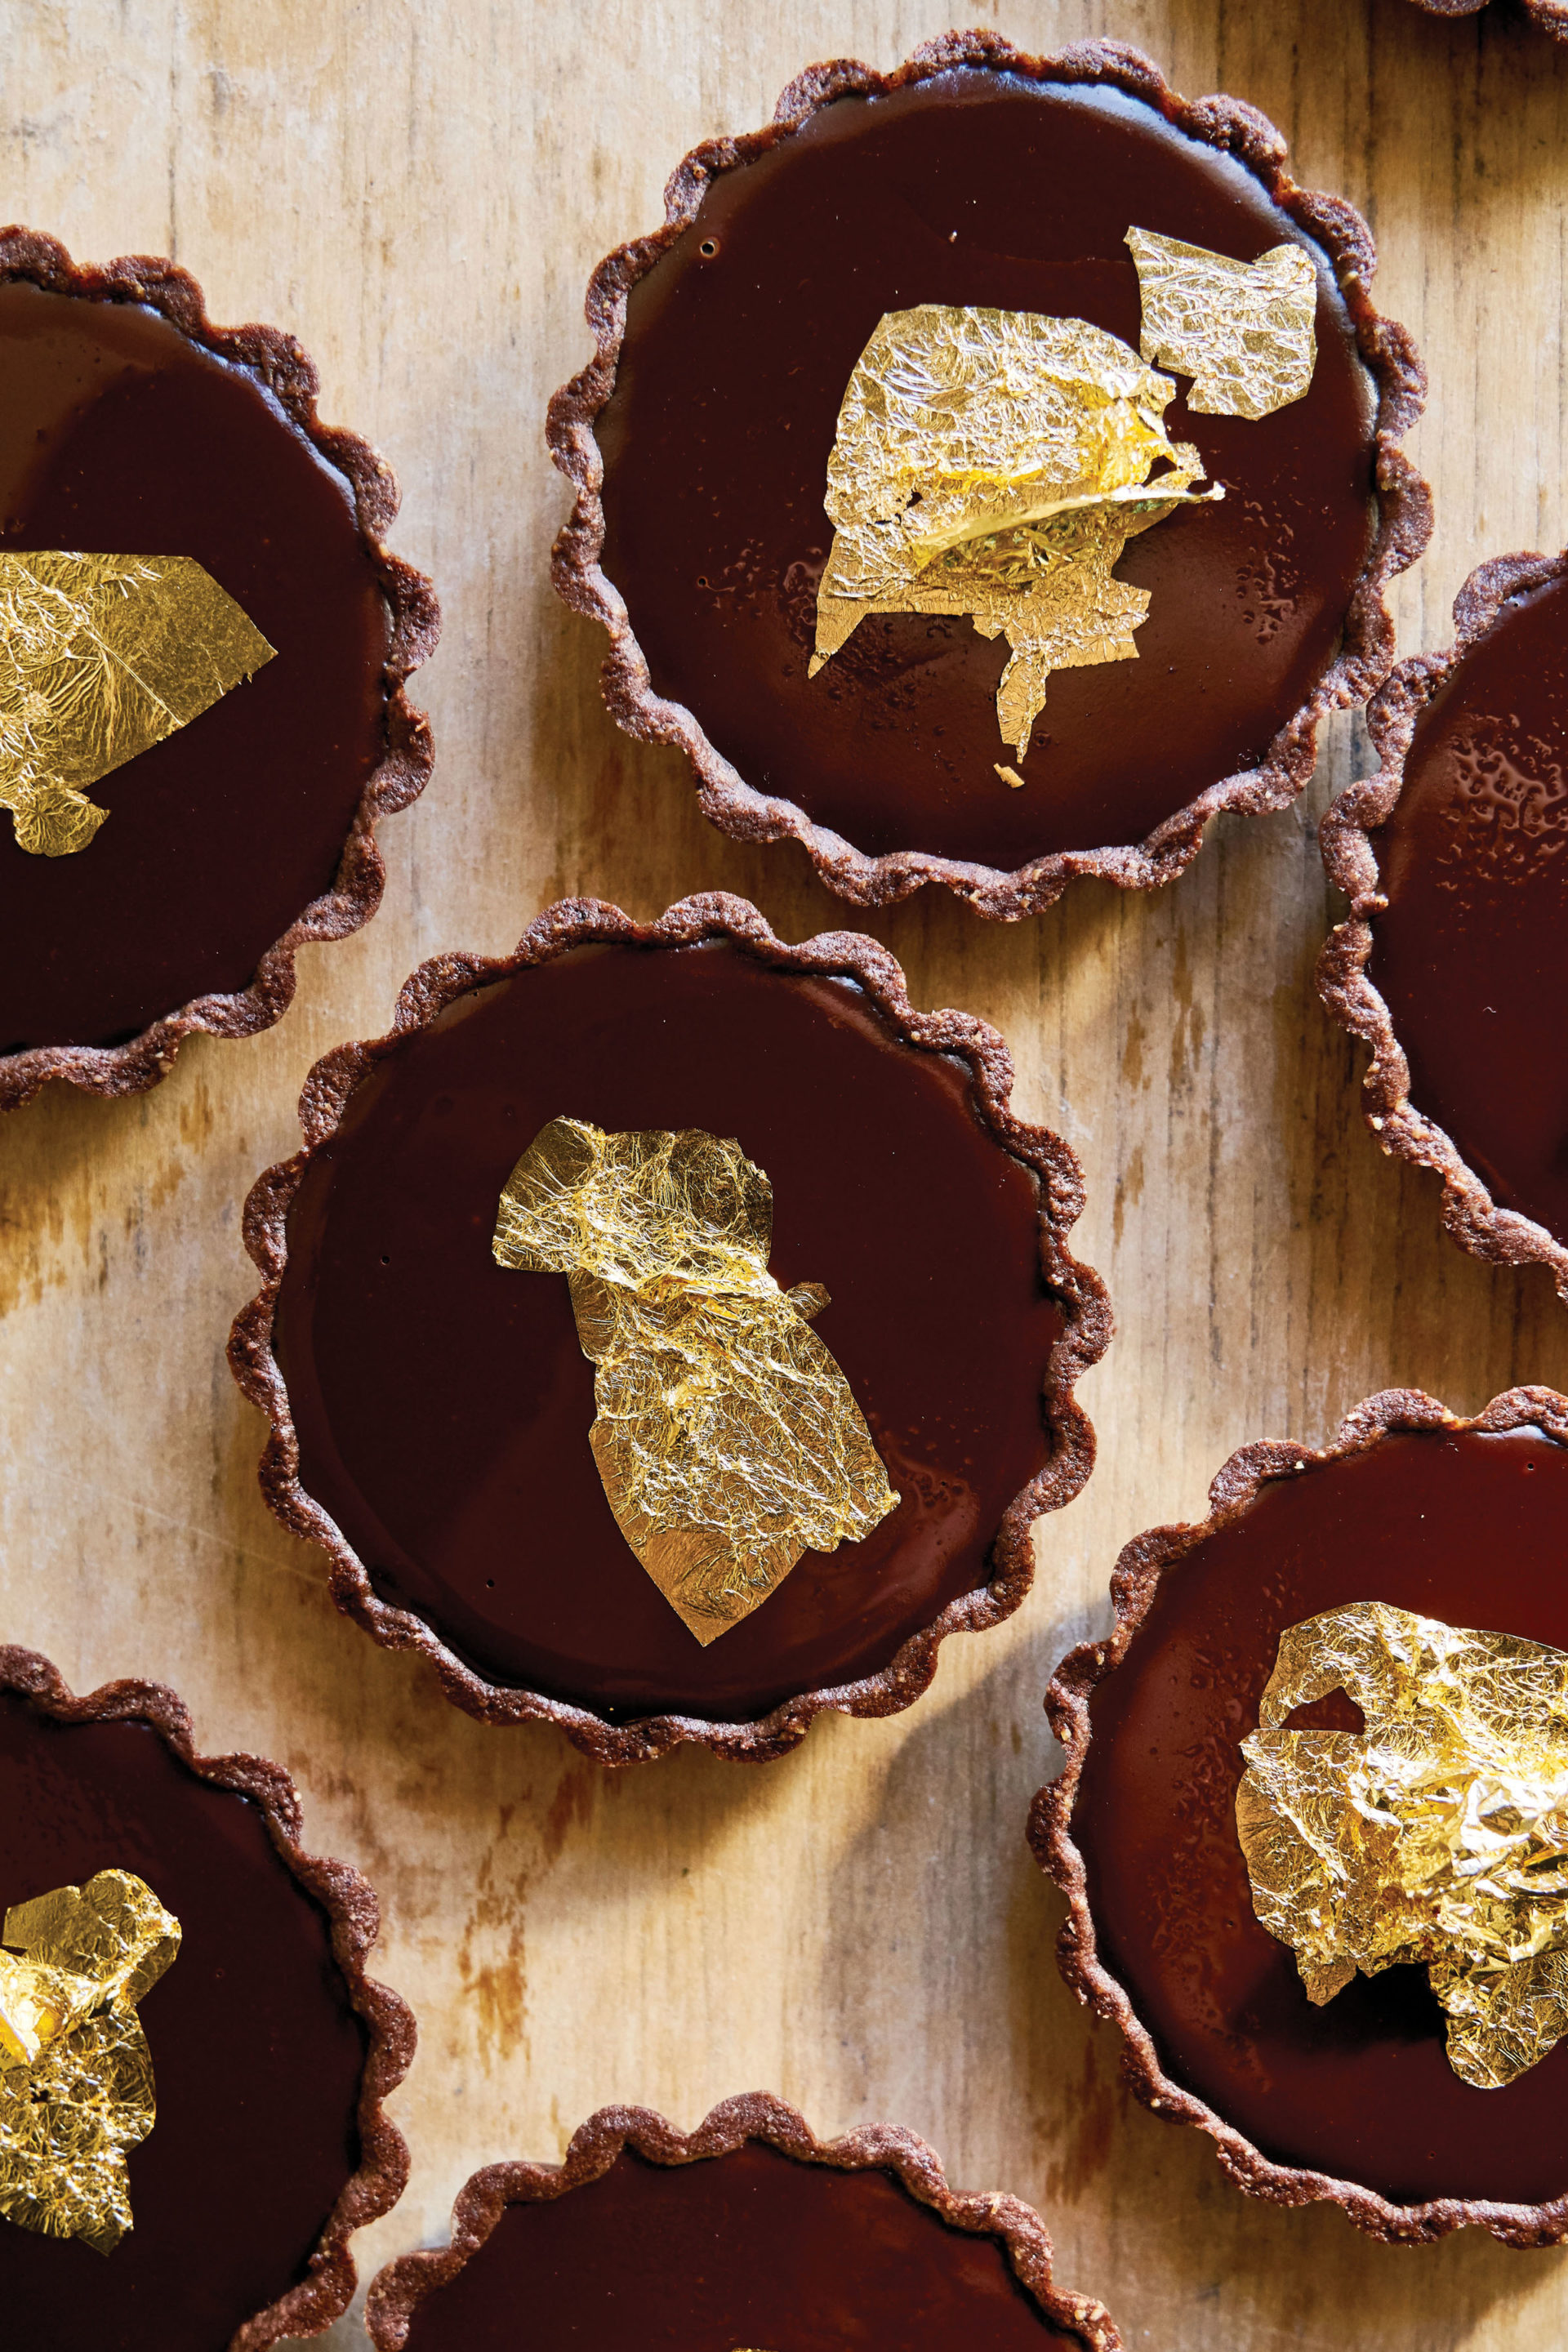 Tartine S Millionaire S Chocolate Caramel Tarts Foodies Magazine